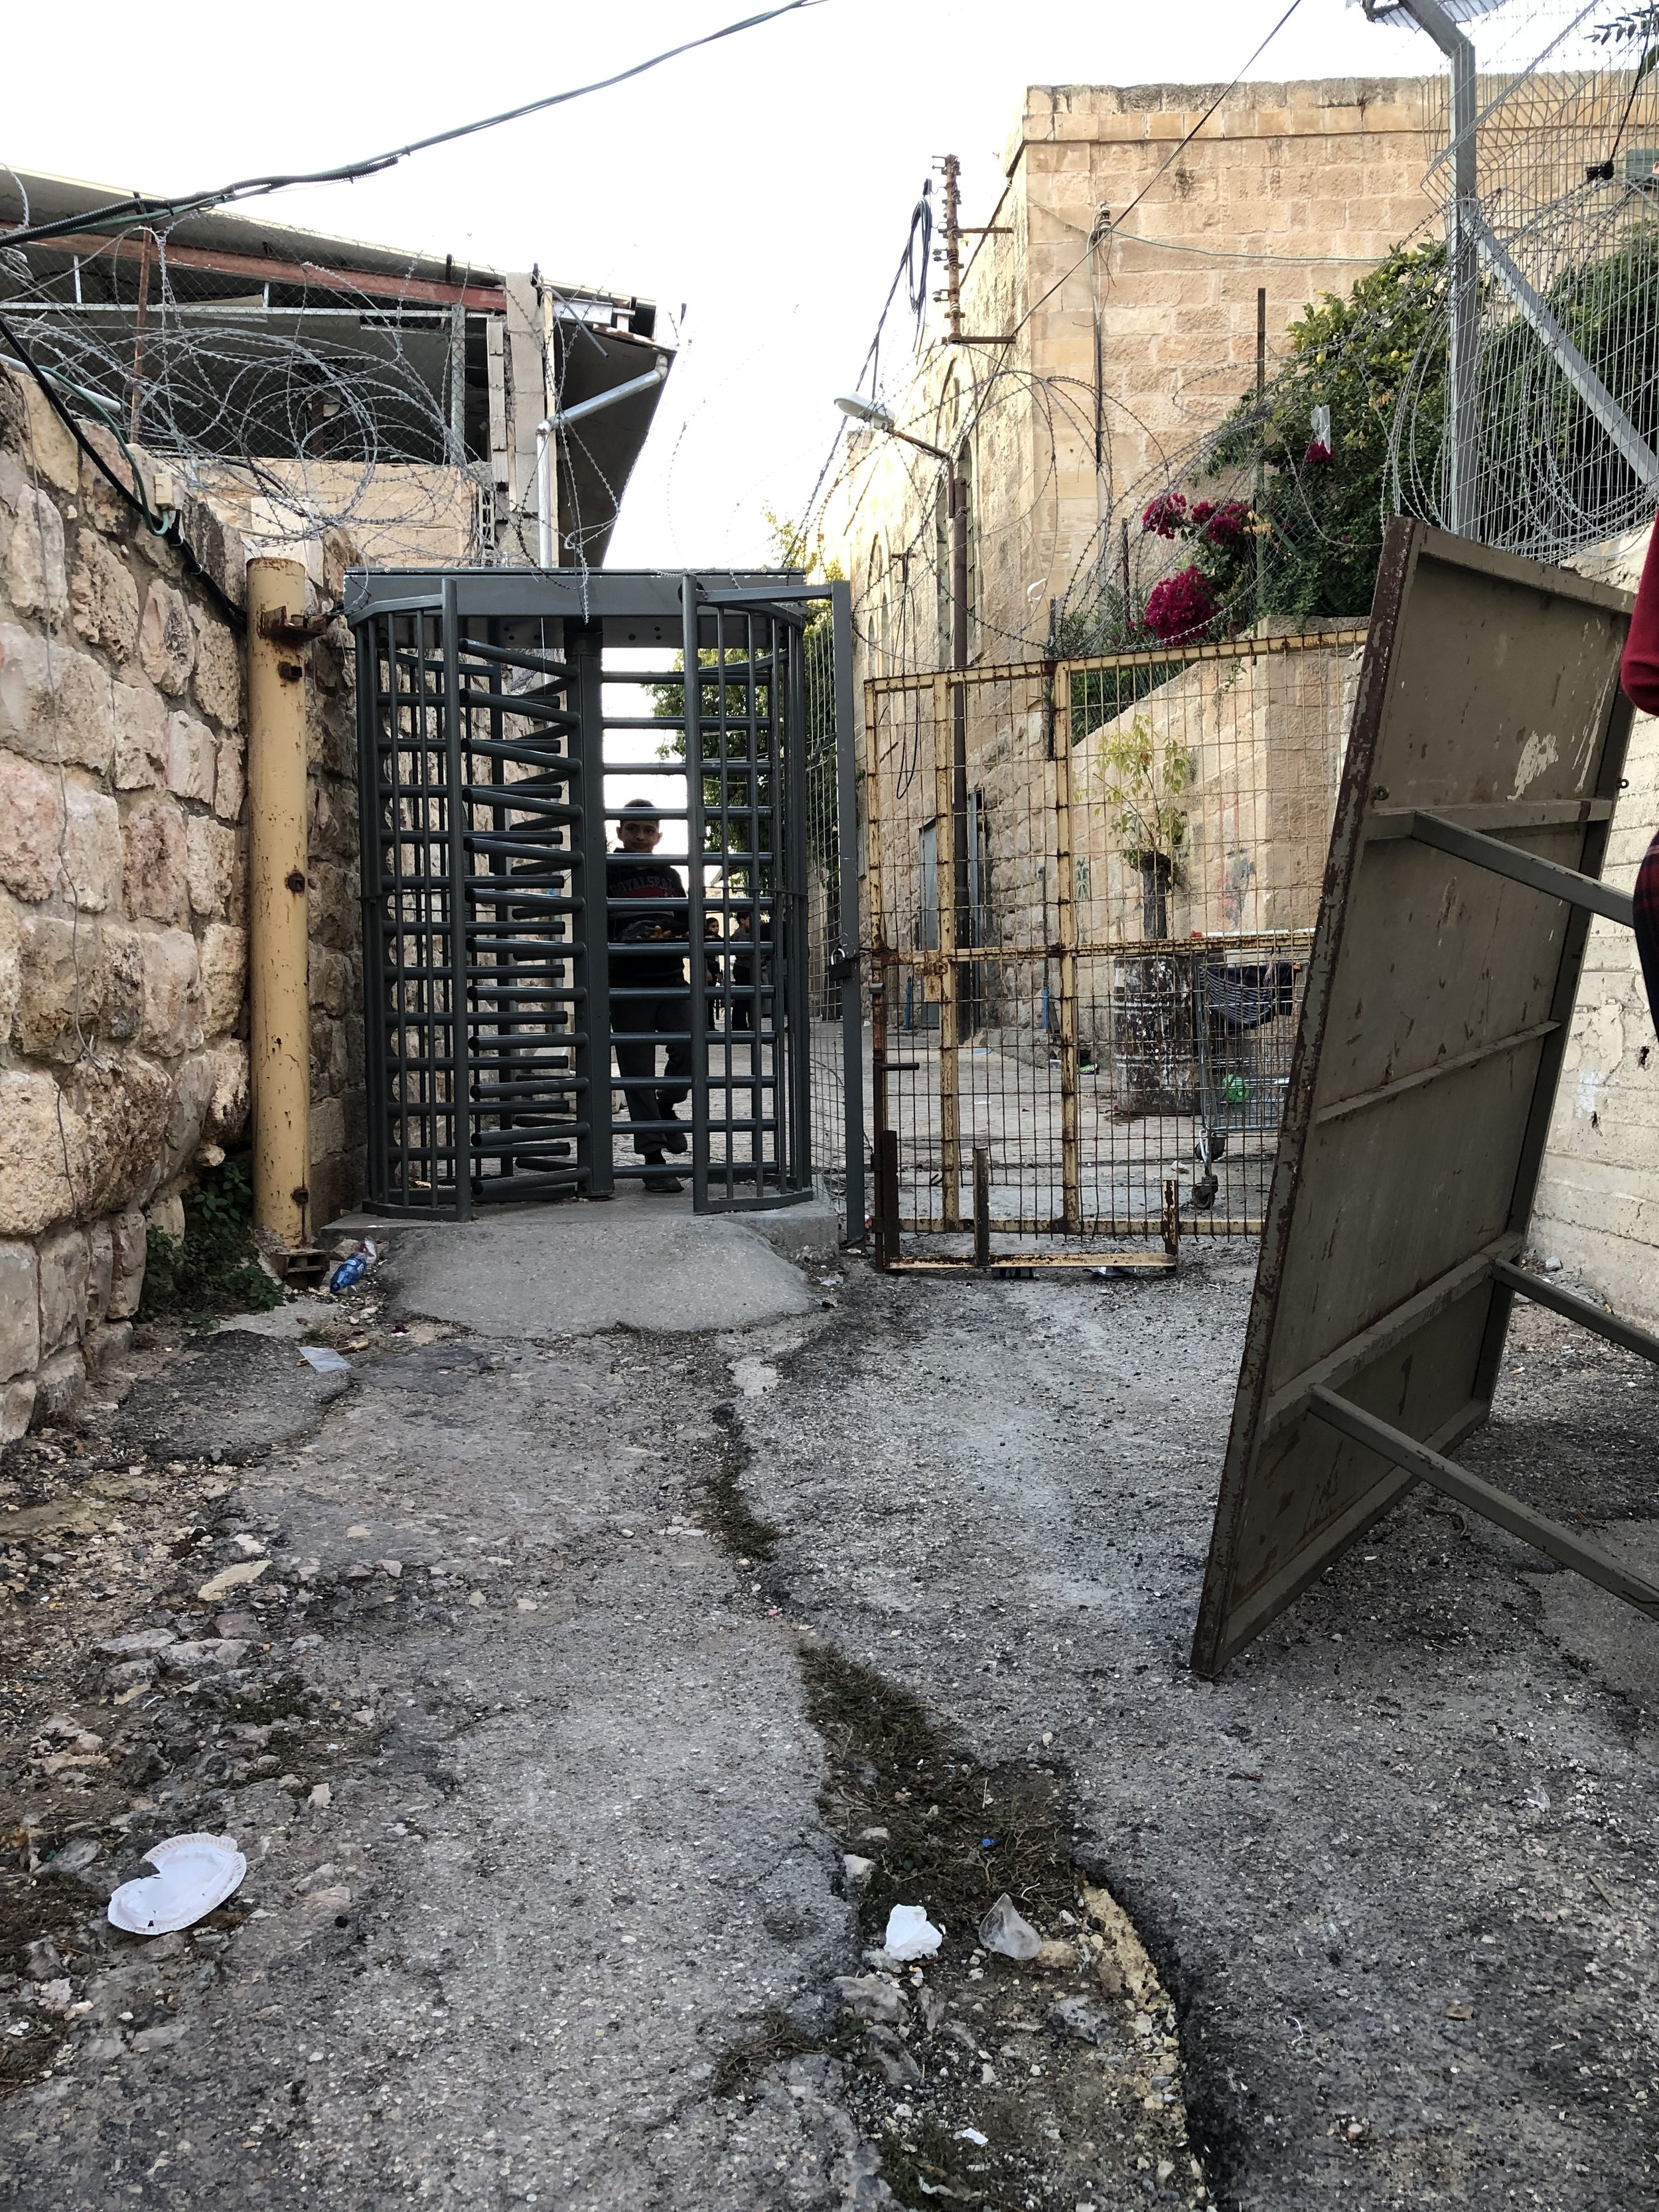 Hebron - overal checkpoints.jpeg